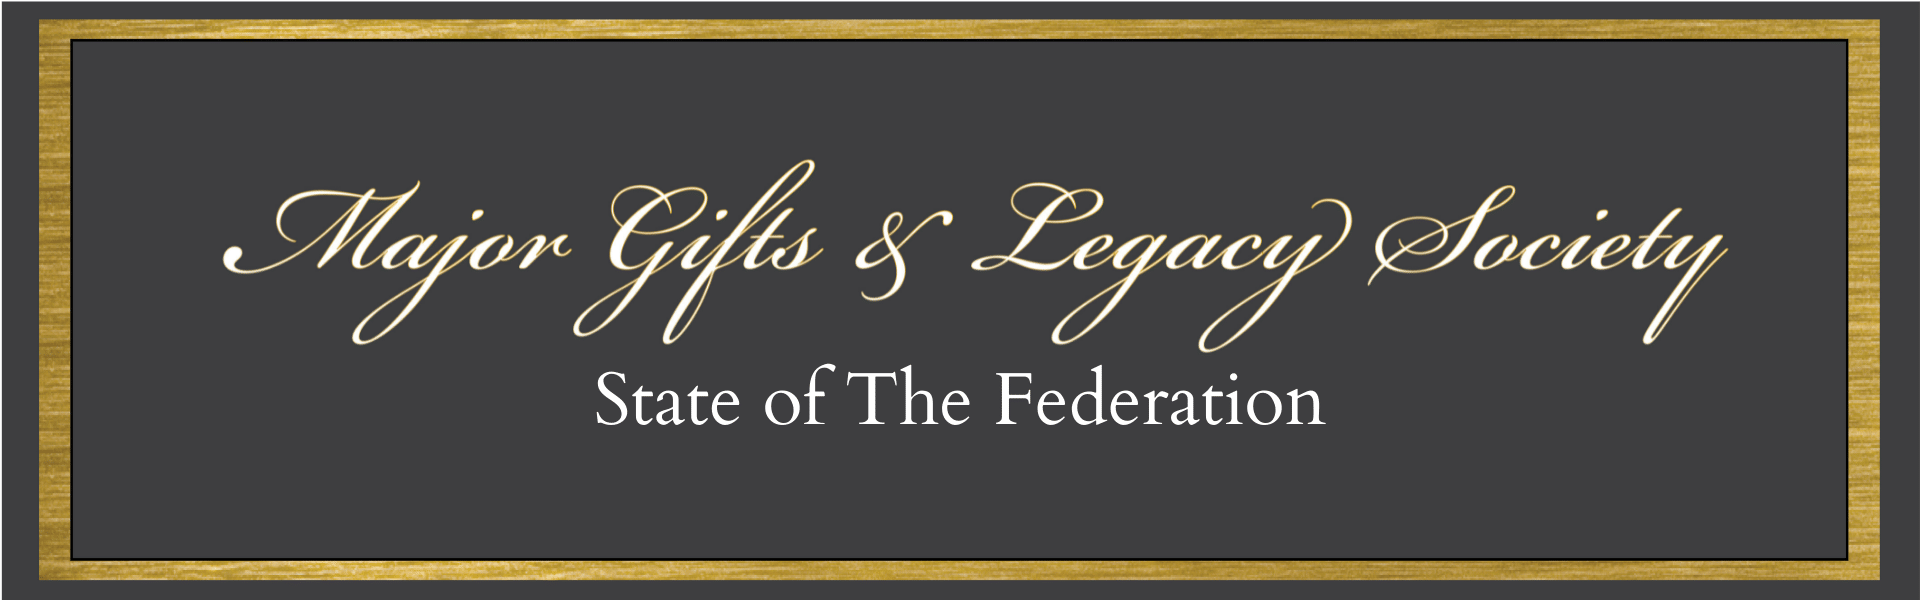 MG & LS State Of The Federation Website Banner